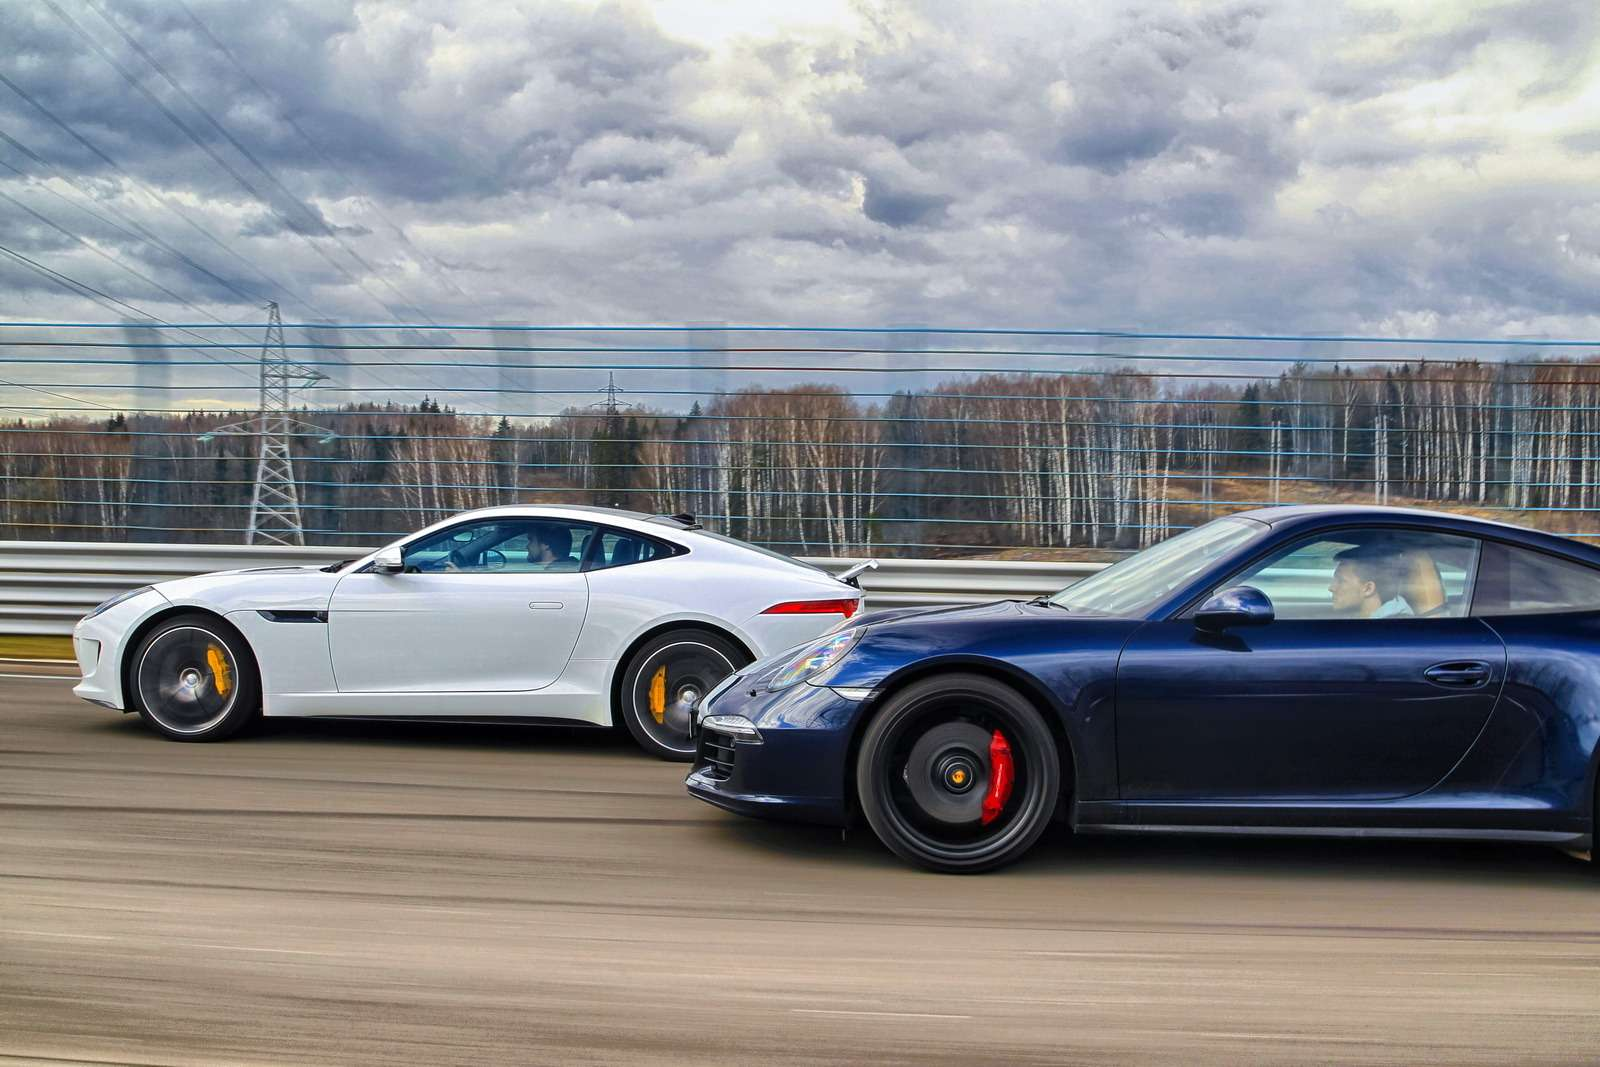 00 911_ F-type_AMG zr08-15-HDR